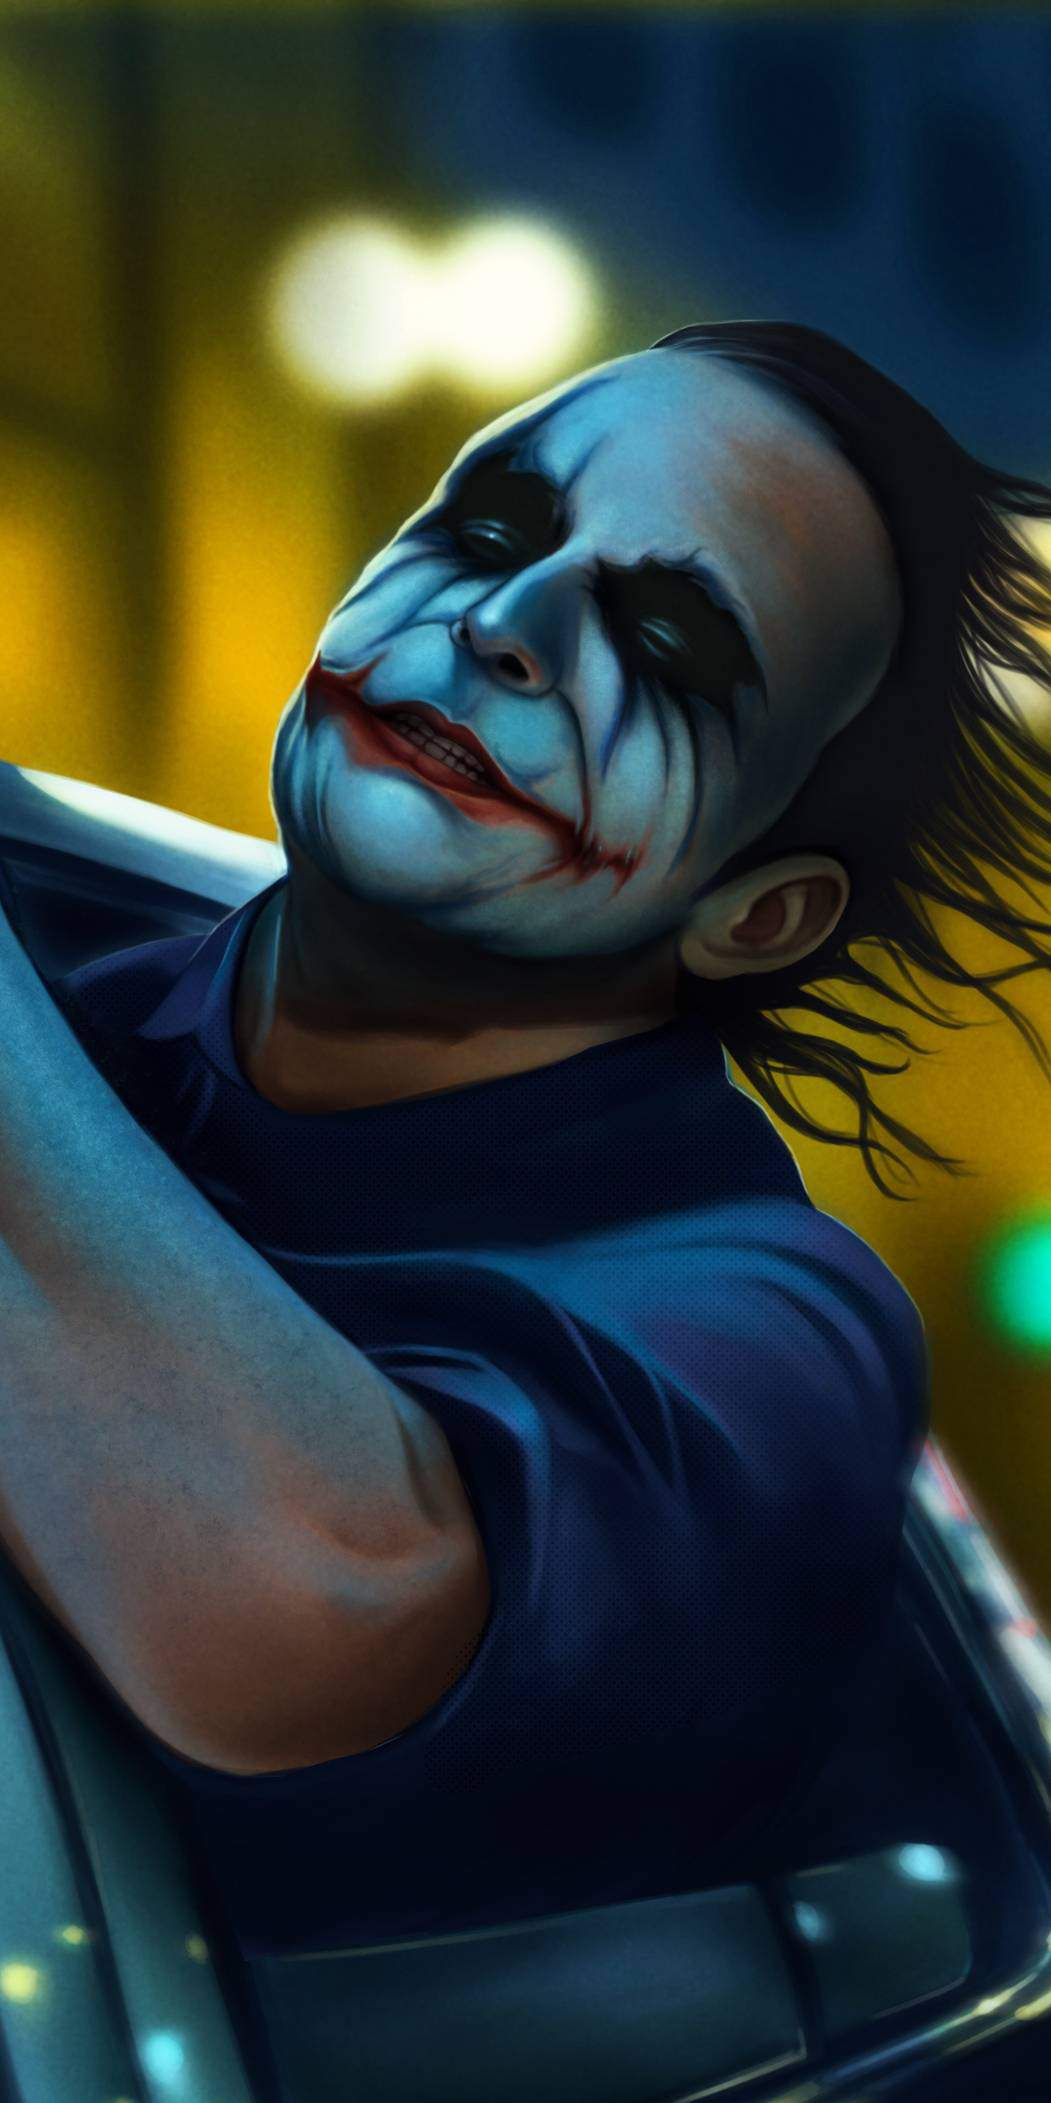 Batman Joker Crazy iPhone Wallpaper